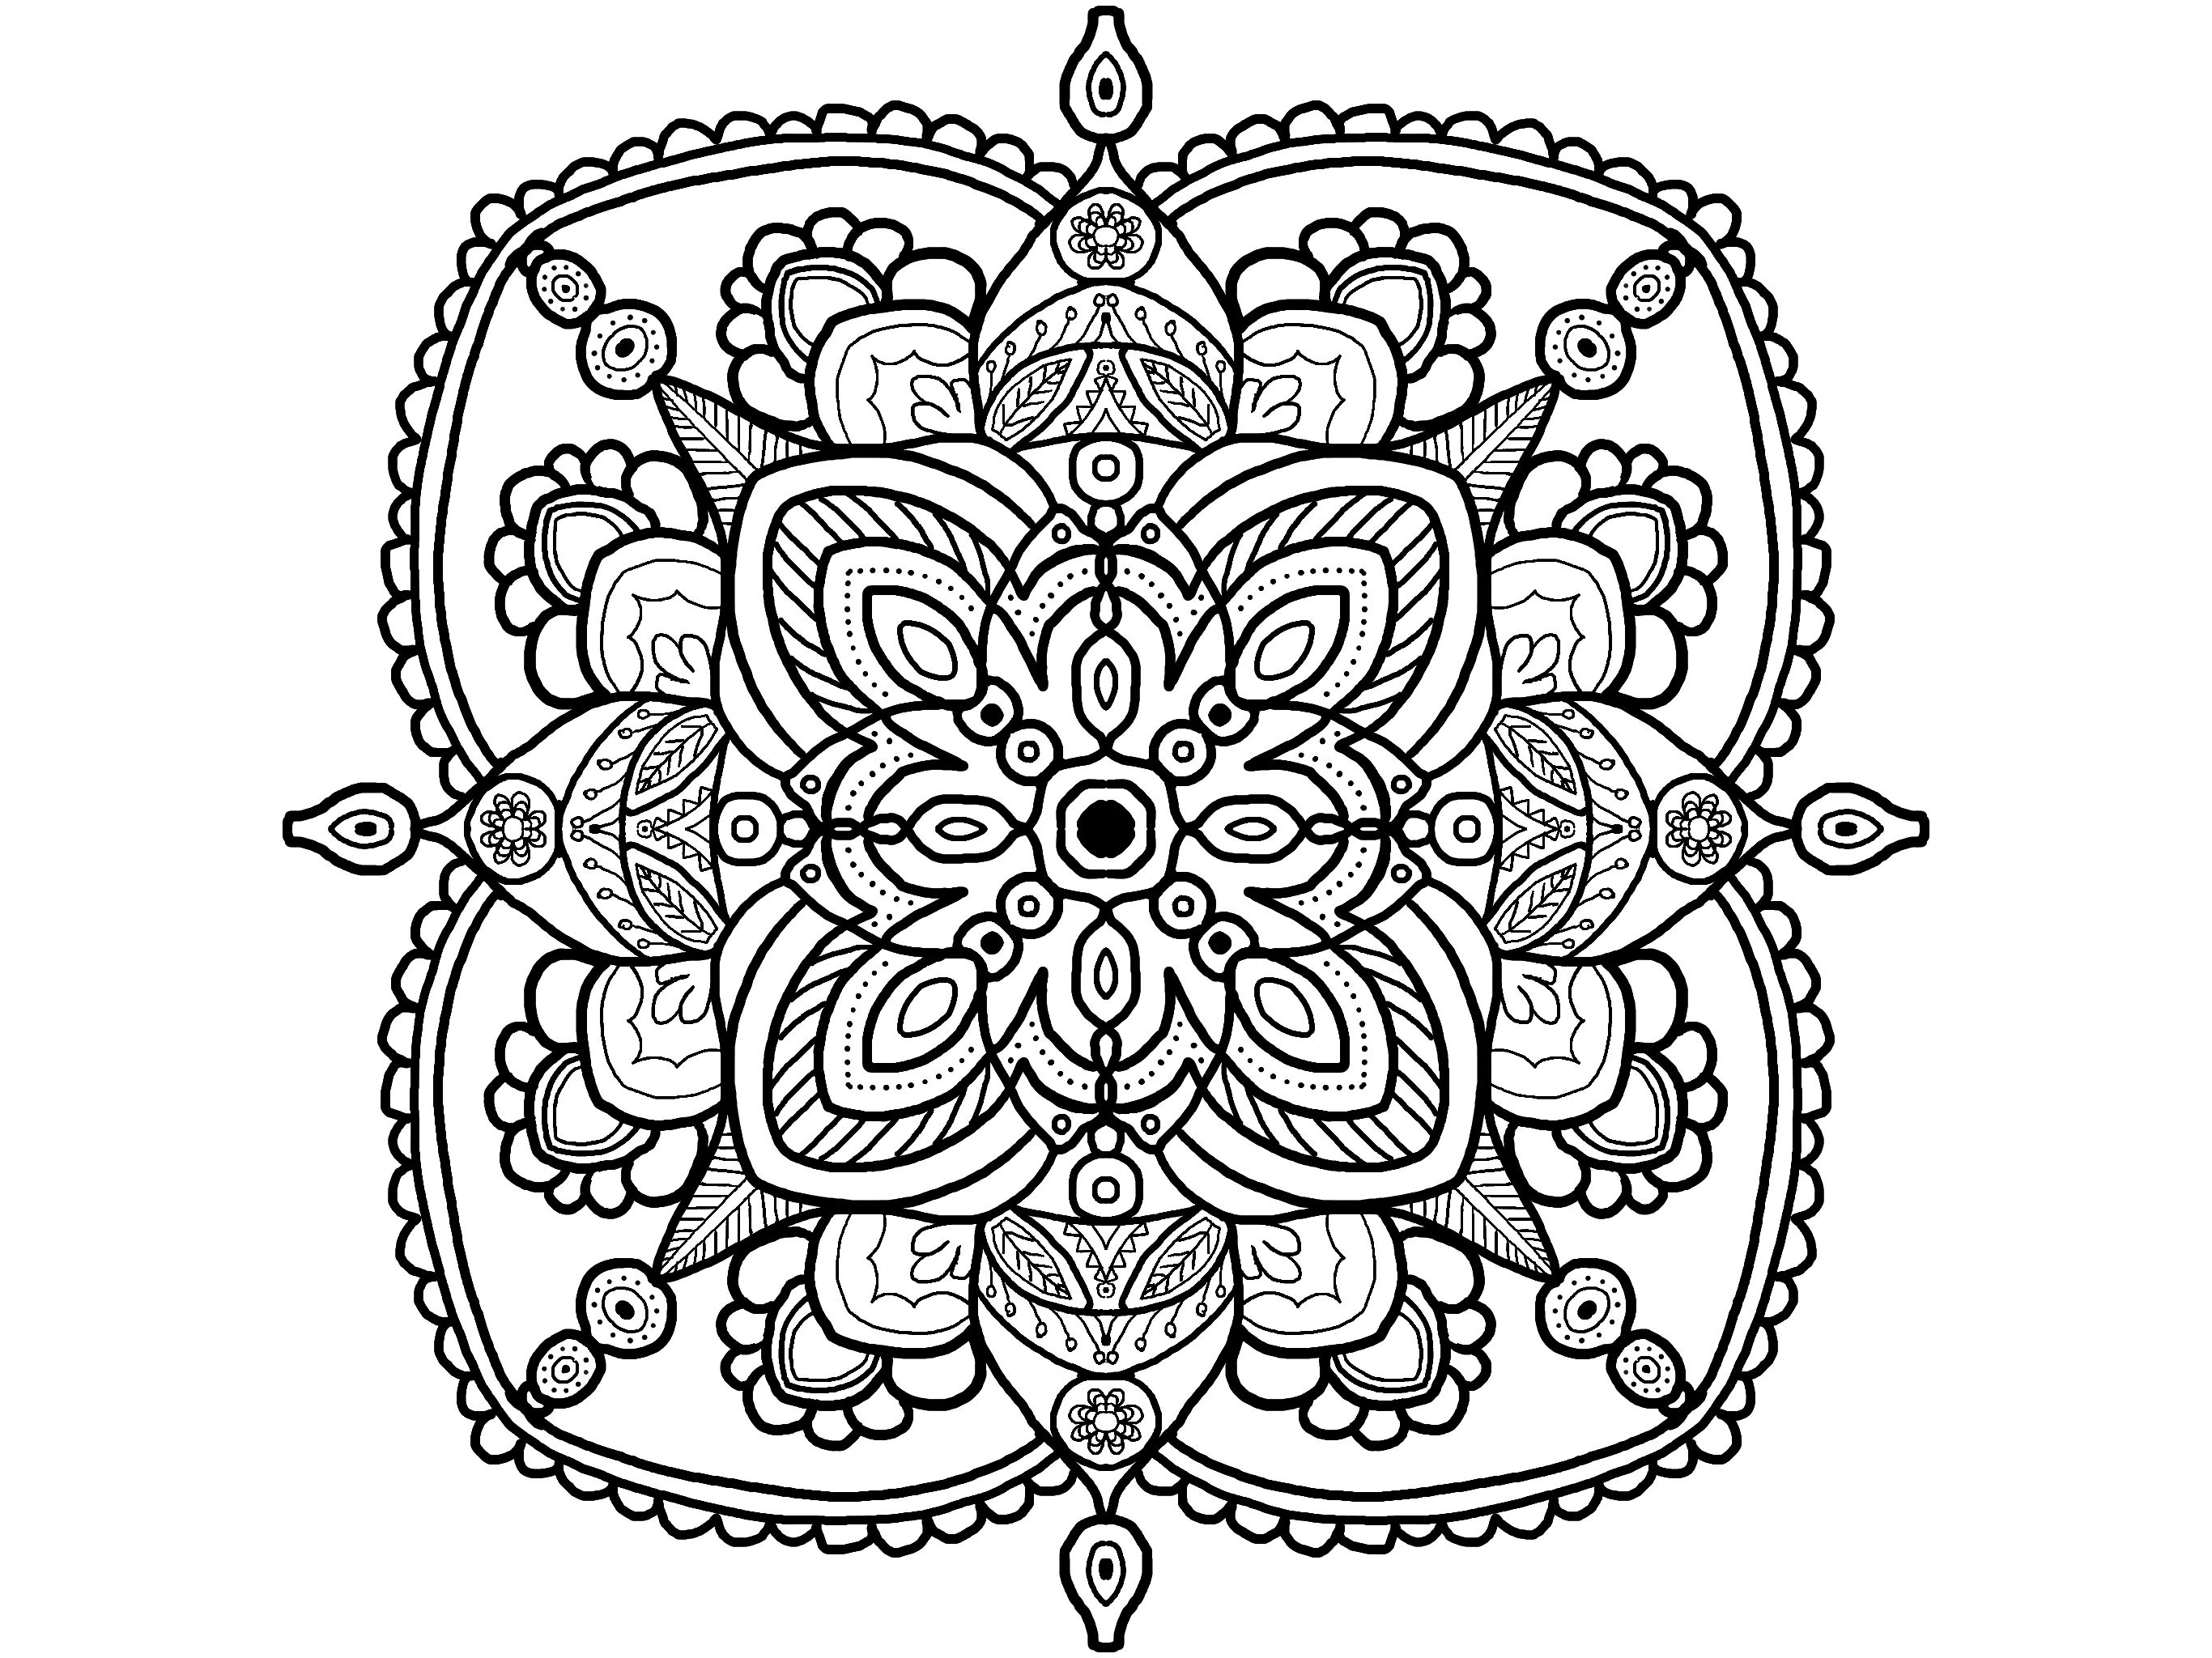 Pin On Coloring Pages And Doodles